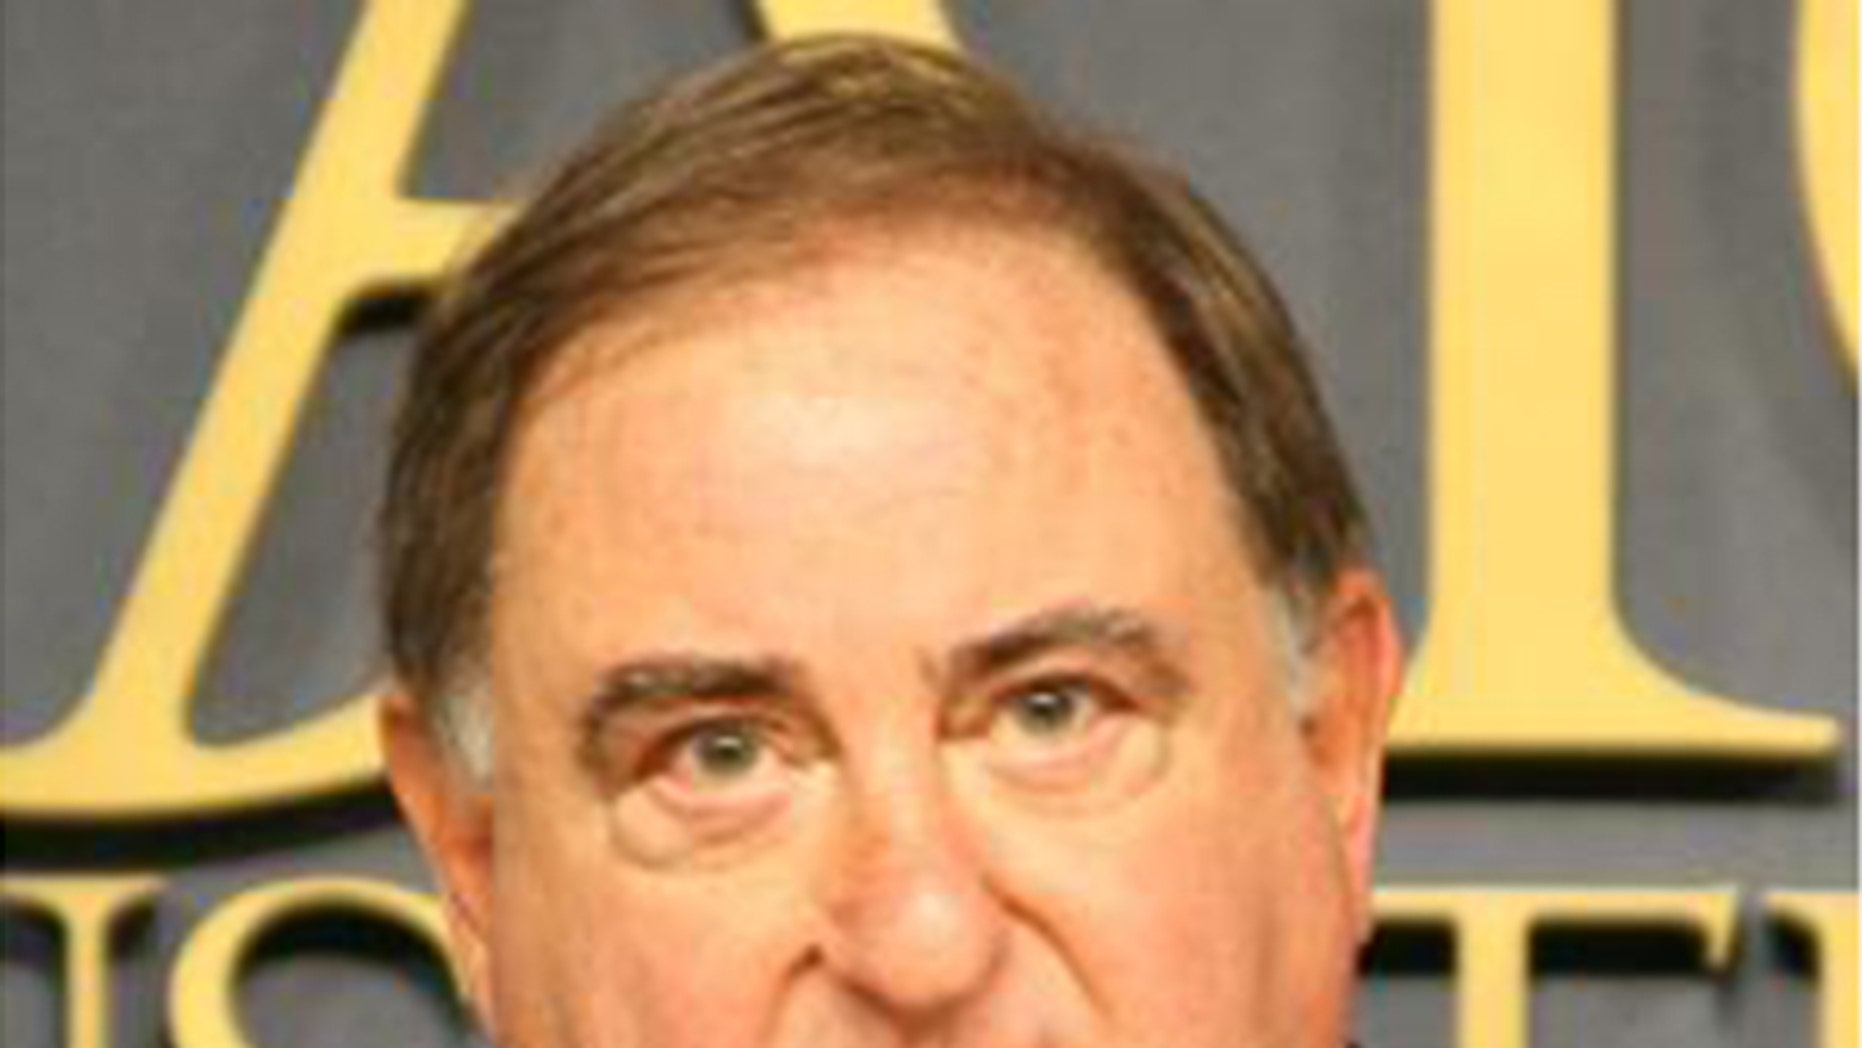 Professor Stefan Halper is at the center of a Pentagon whisteblower complaint, documents show.